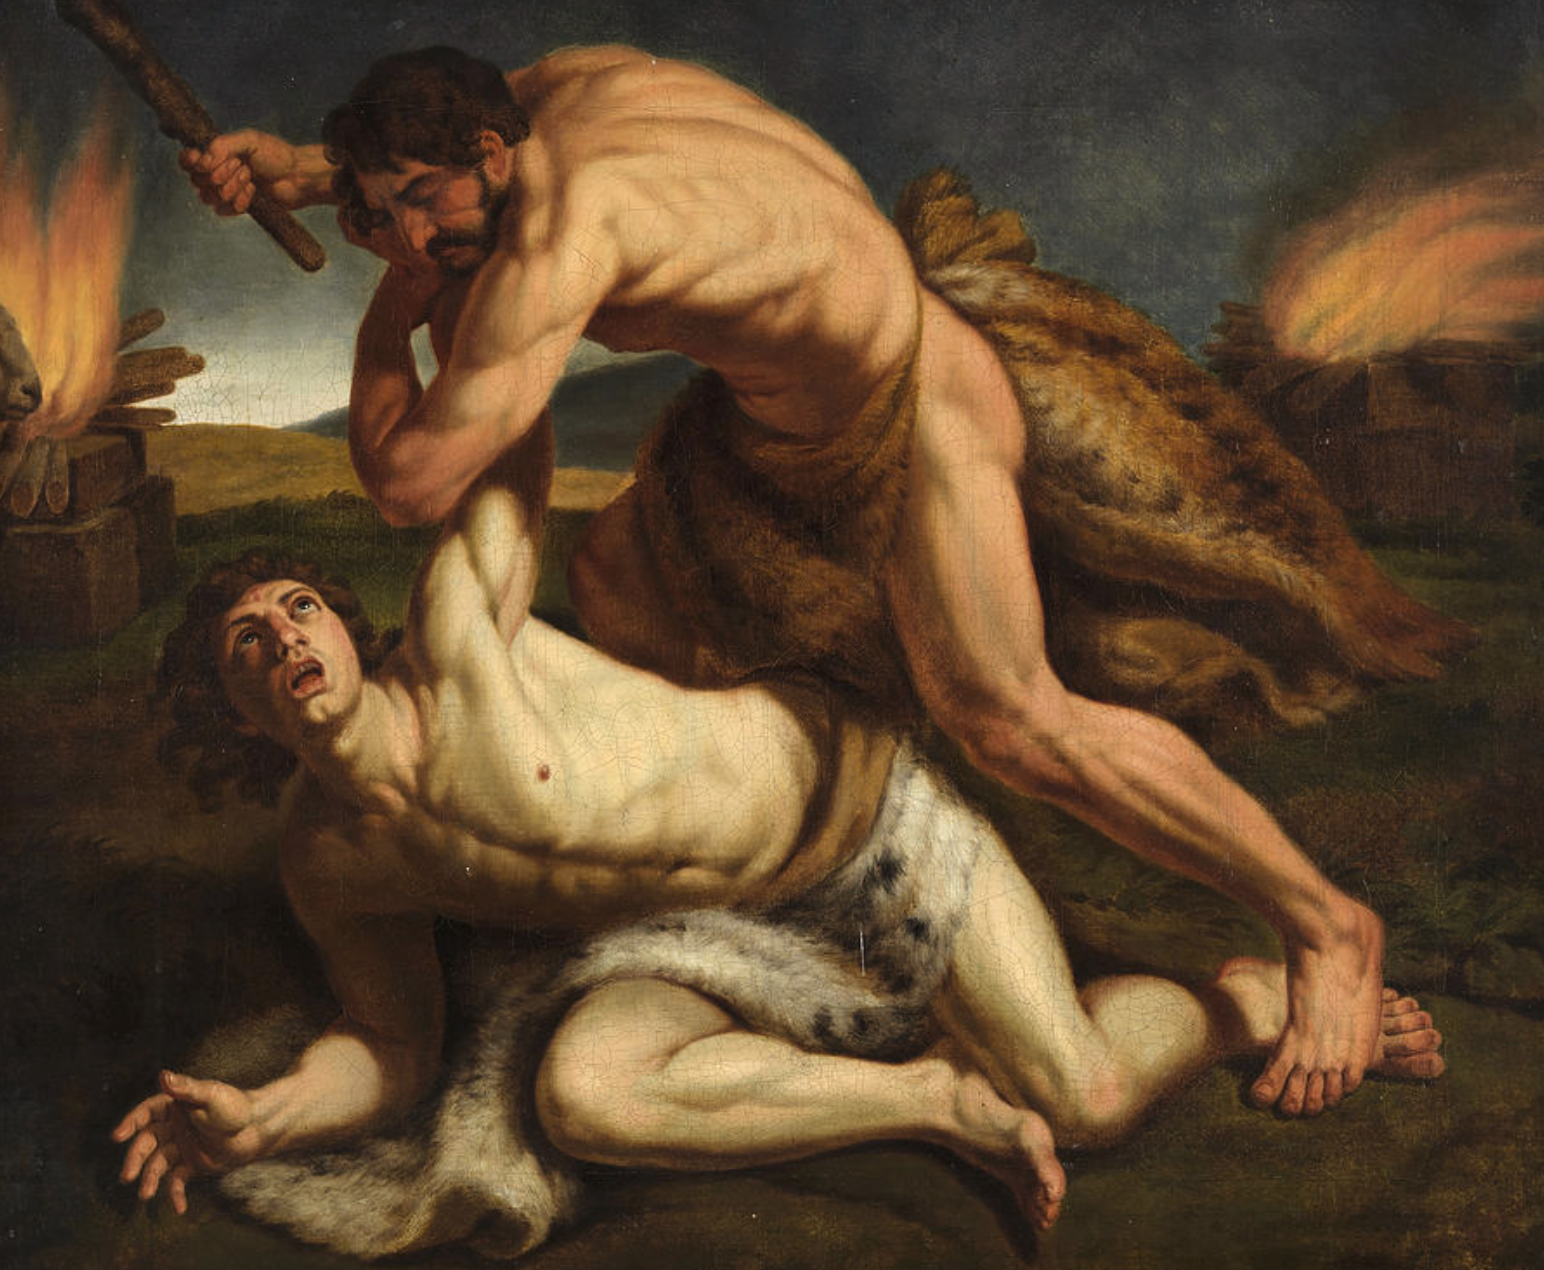 Cain killing Abel is a painting by Unknown 19th century